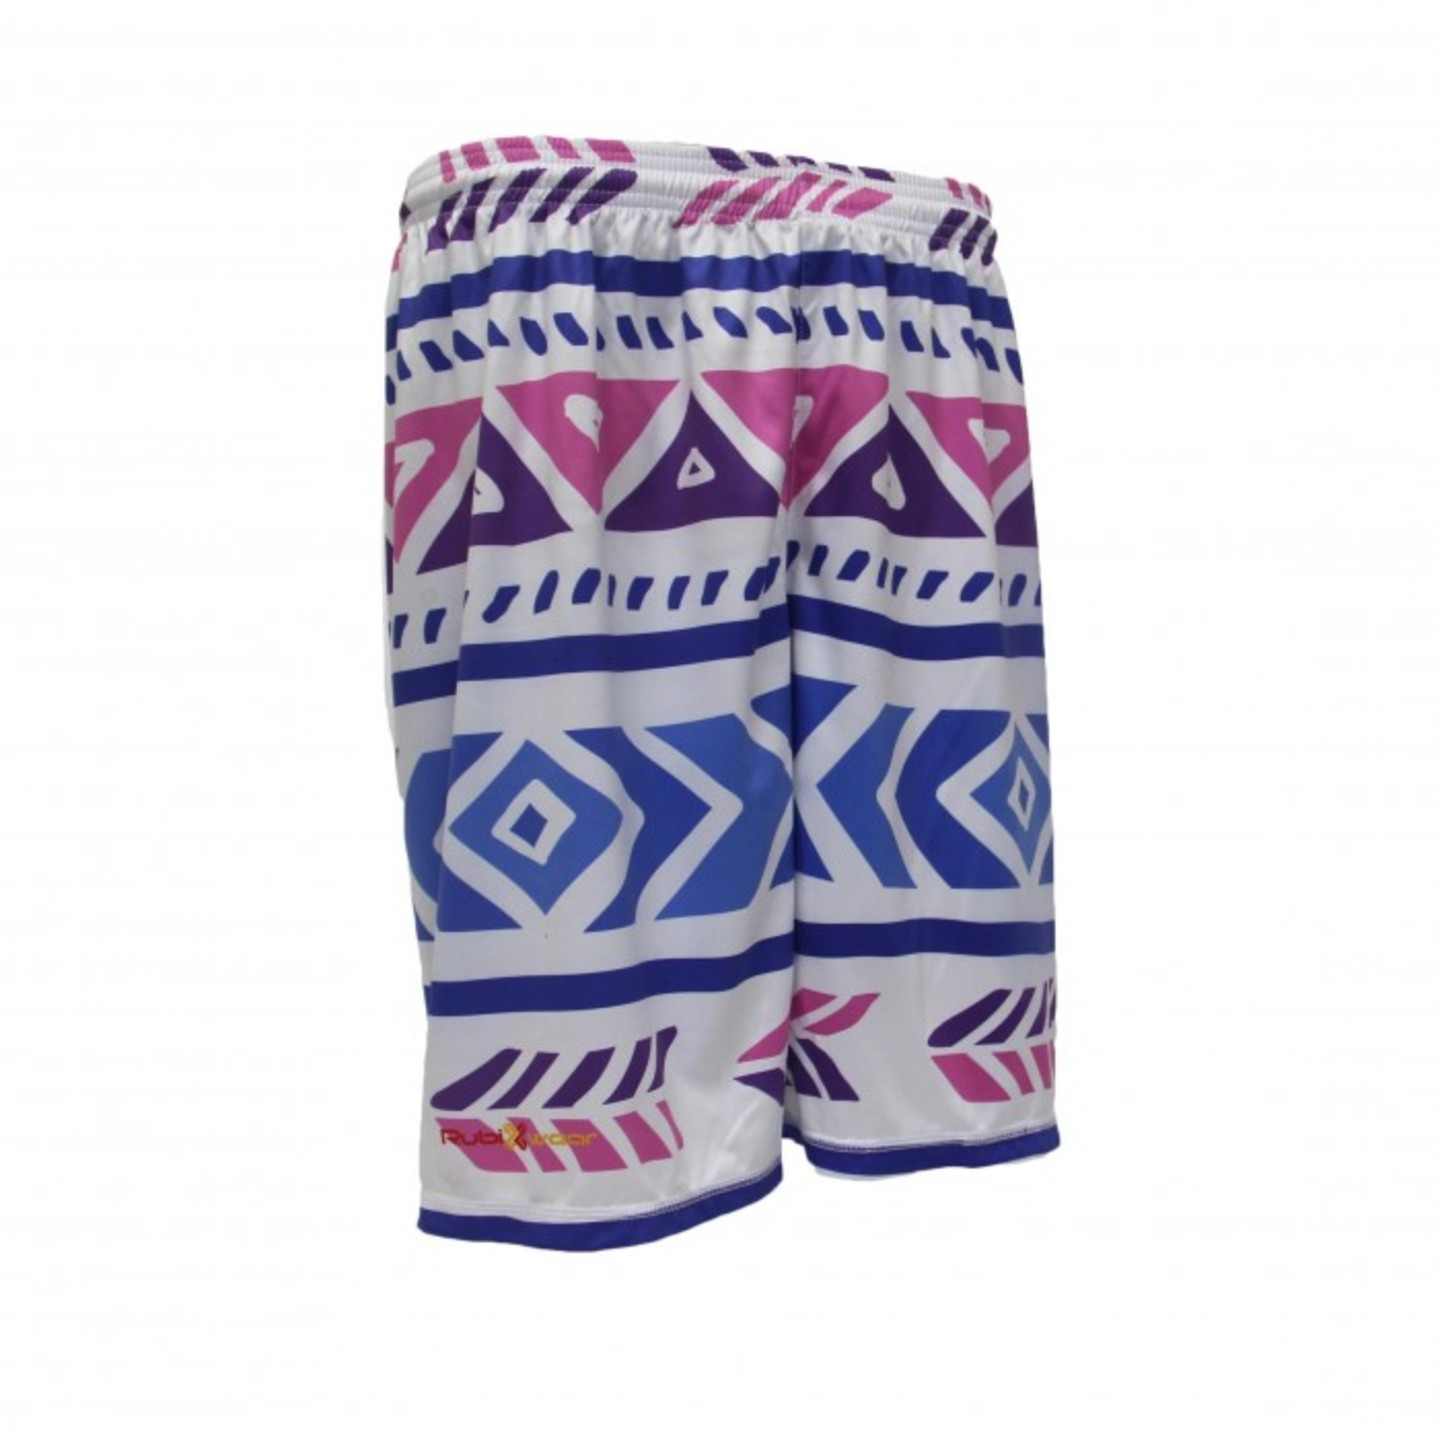 Aztec Purple Sublimated Shorts